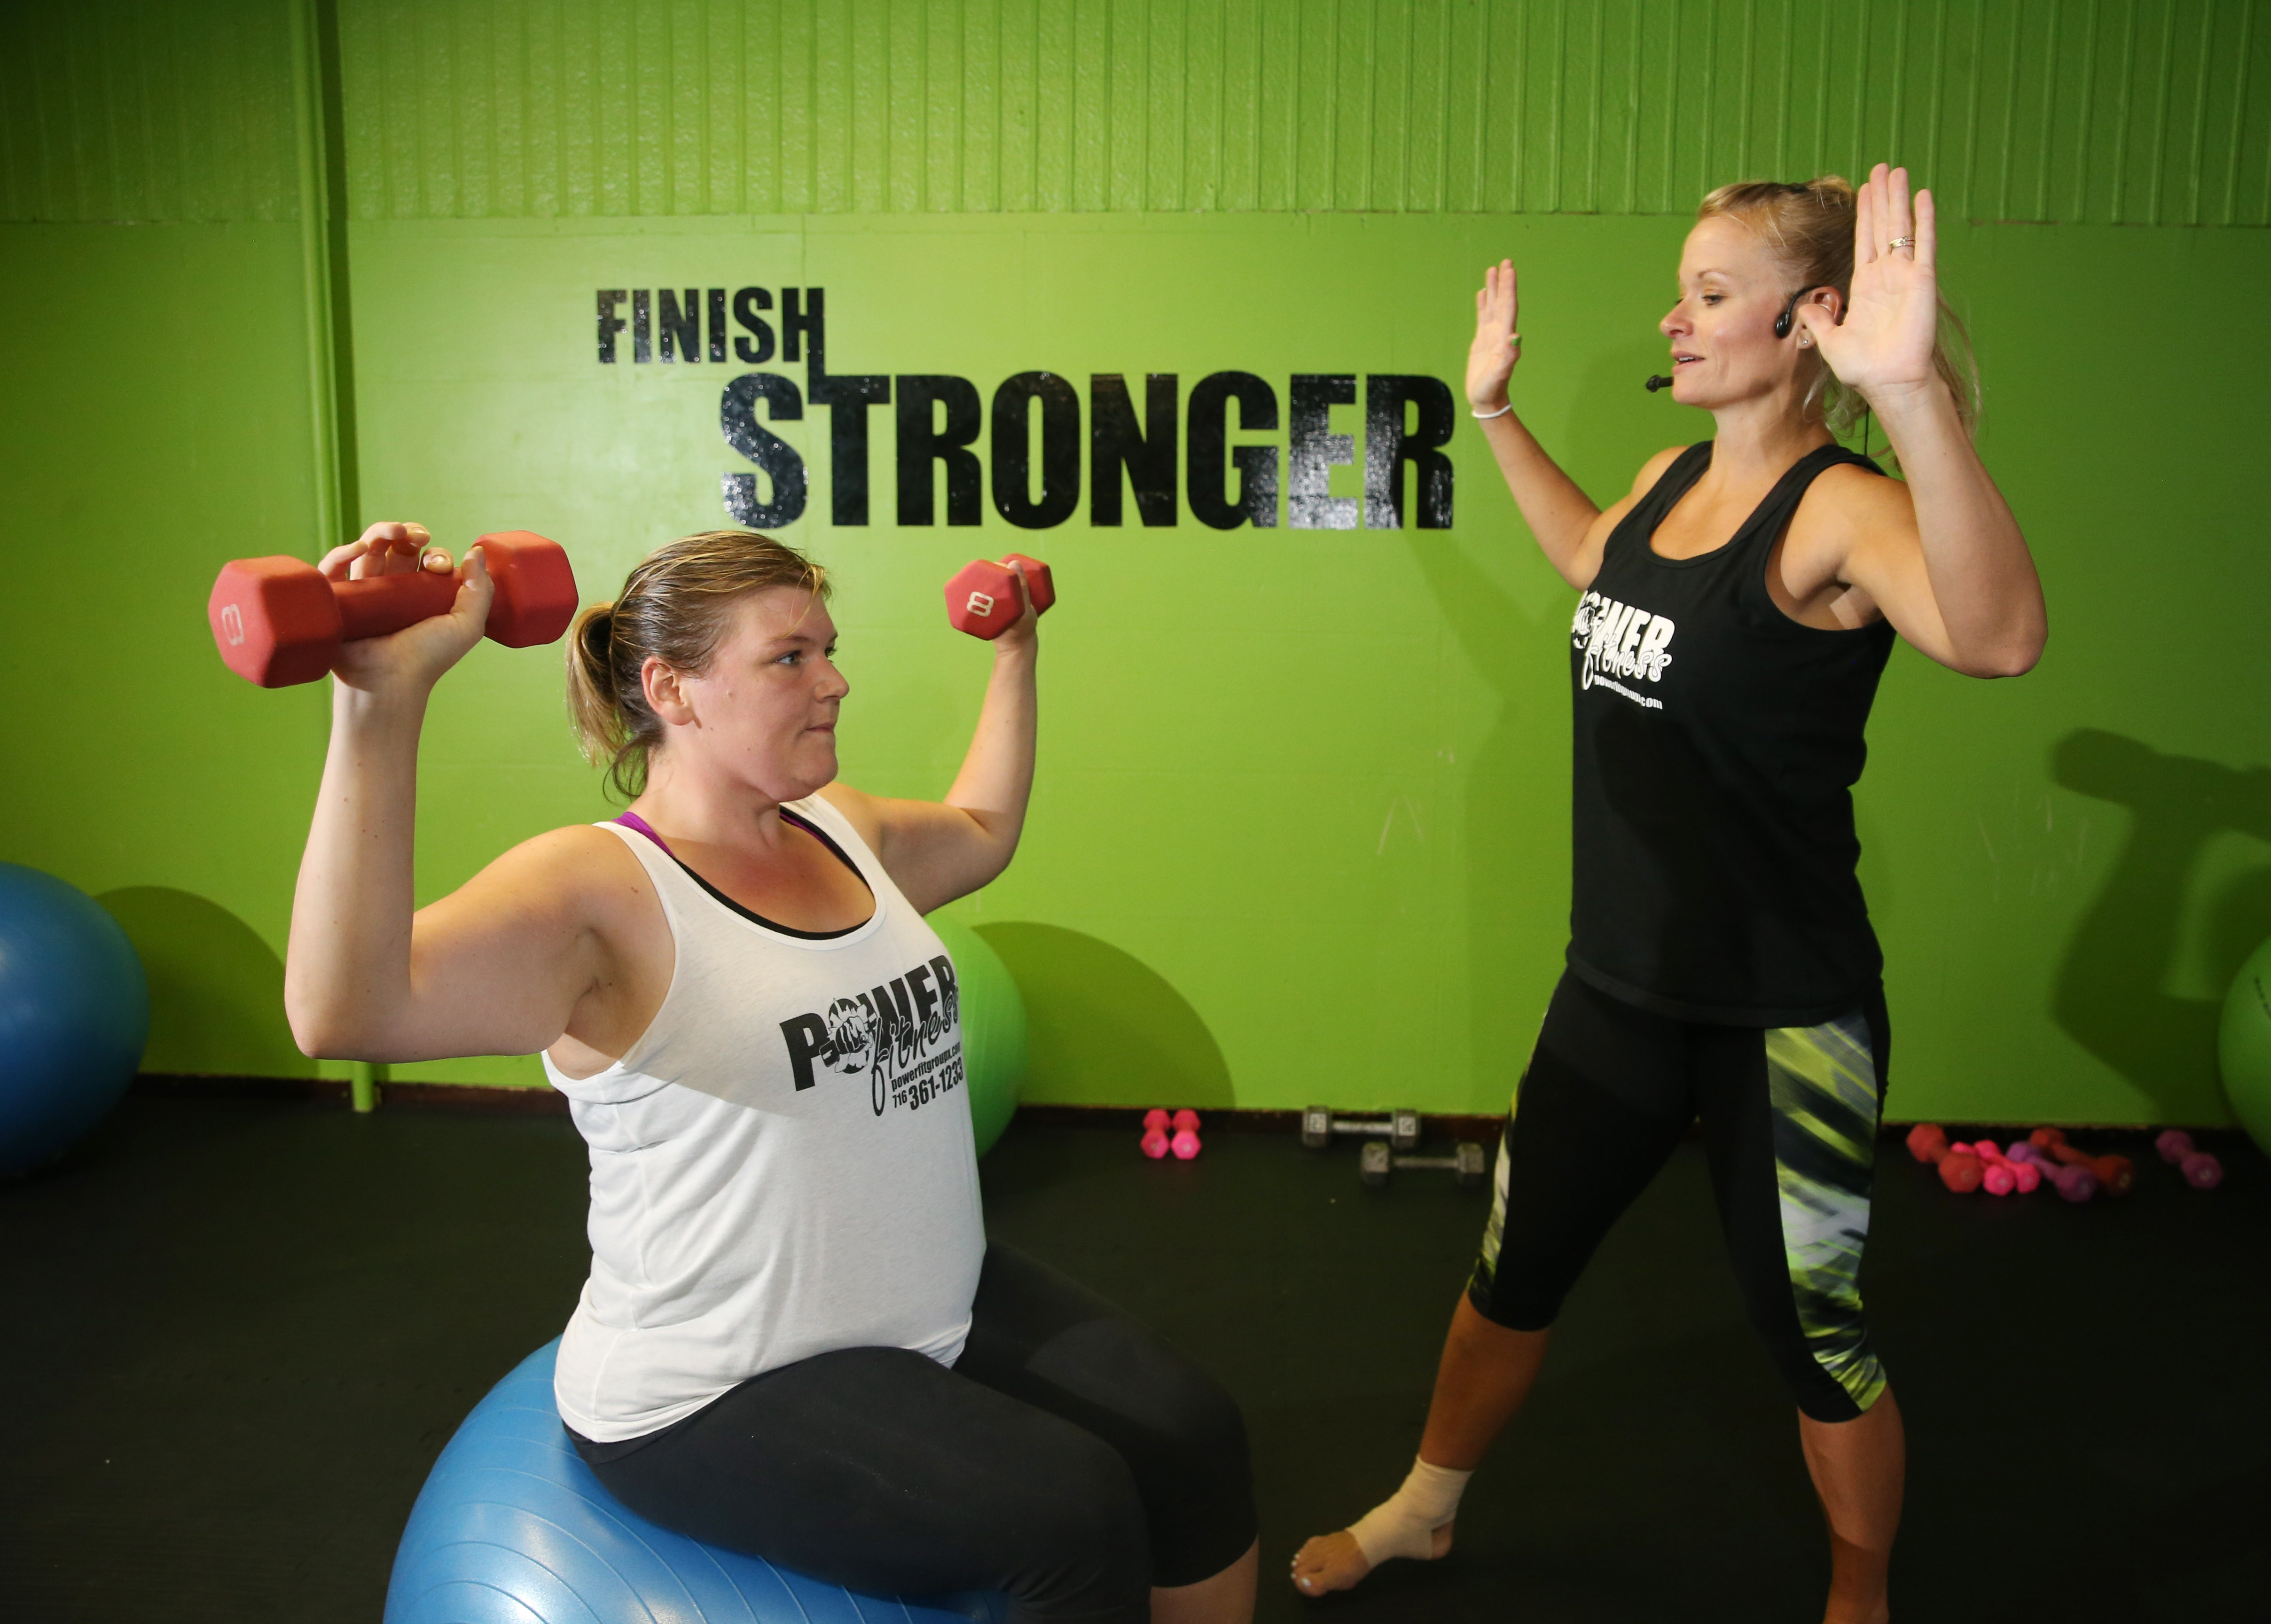 Sarah Coburn, owner of Power Fitness Group Exercise Studio in North Tonawanda, works with Marissa Nicholson, of Cambria, who started her weight-loss journey during the fall of 2013 and has lost 73 pounds since. (Sharon Cantillon/Buffalo News)